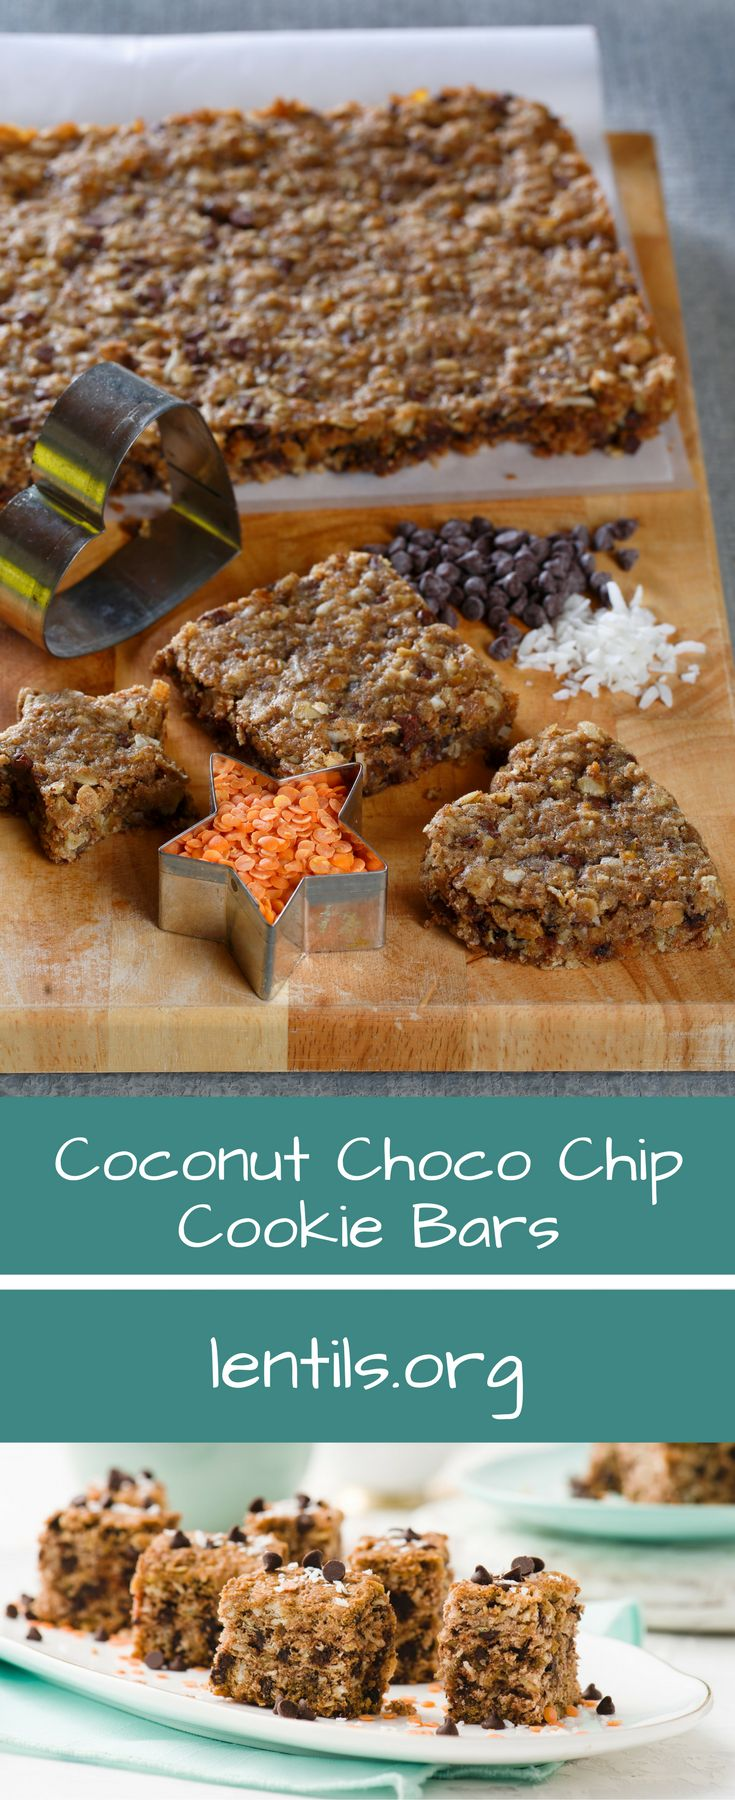 This is a healthy and fun spin on a classic oatmeal chocolate cookie. These snack-worthy cookie bars are chock full of protein, fibre, and other nutrients, but are also indulgent and delicious, making for a nutritious dessert option too!